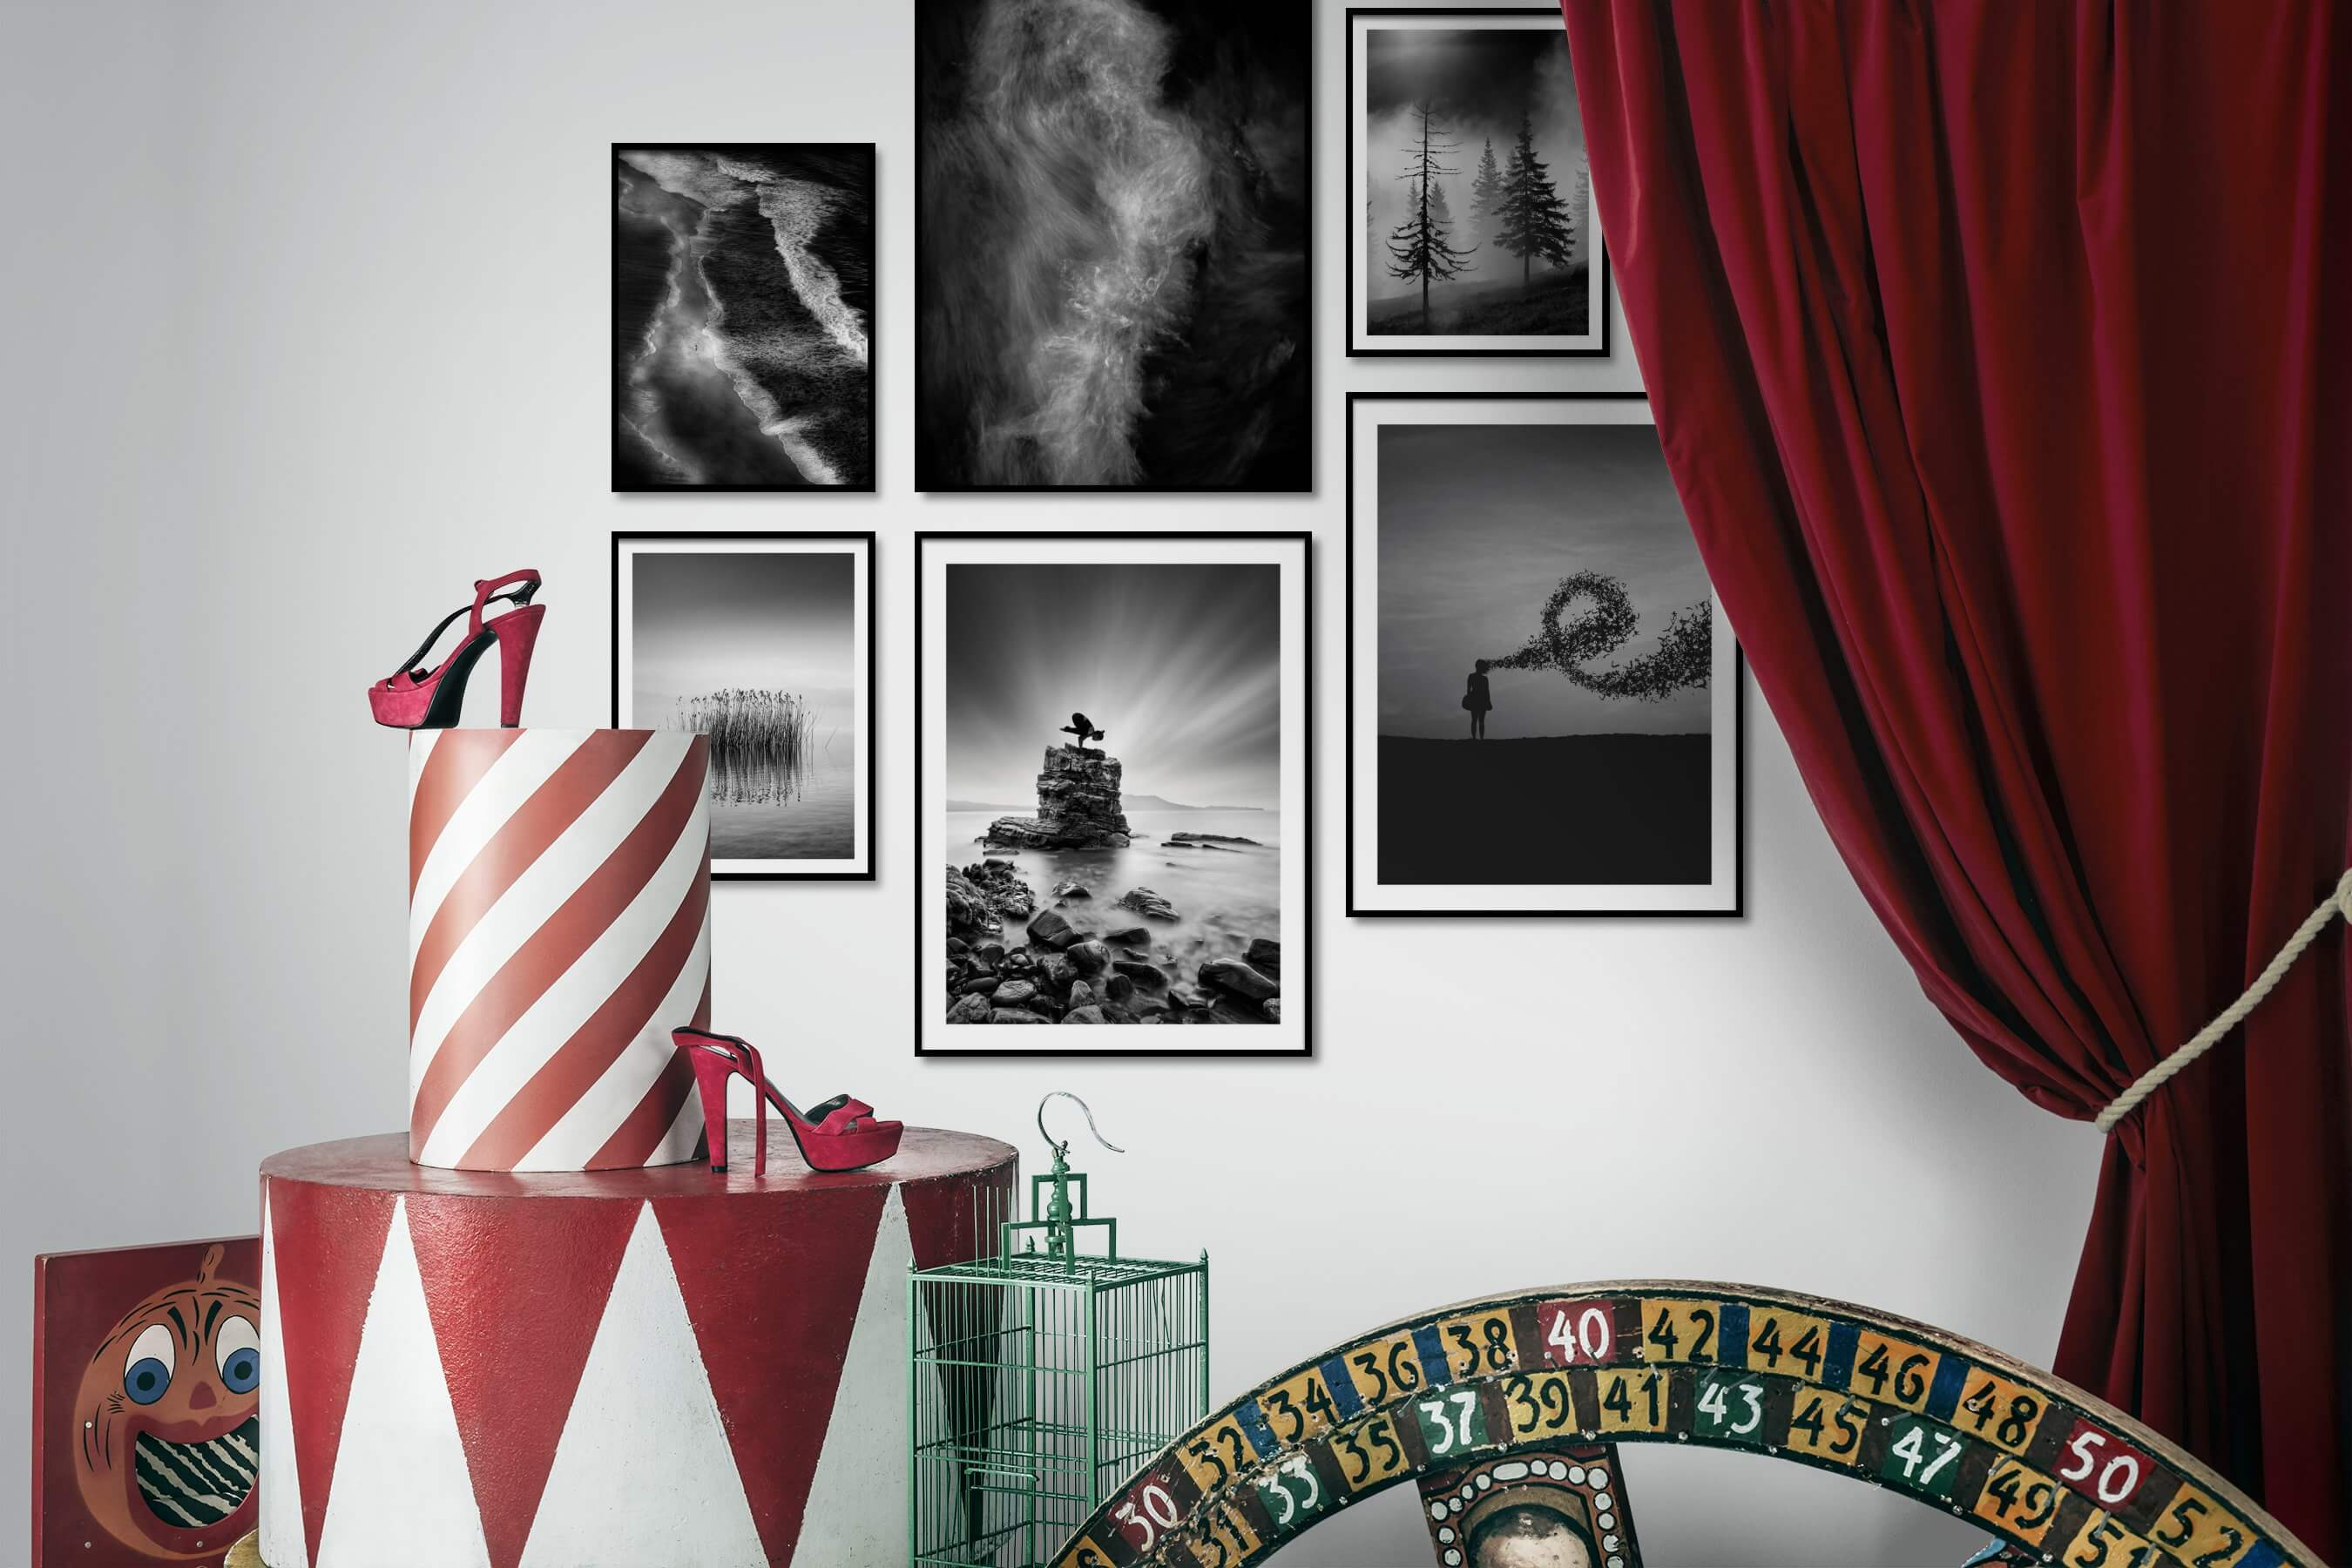 Gallery wall idea with six framed pictures arranged on a wall depicting Black & White, For the Moderate, Beach & Water, Dark Tones, Nature, For the Minimalist, Mindfulness, and Artsy